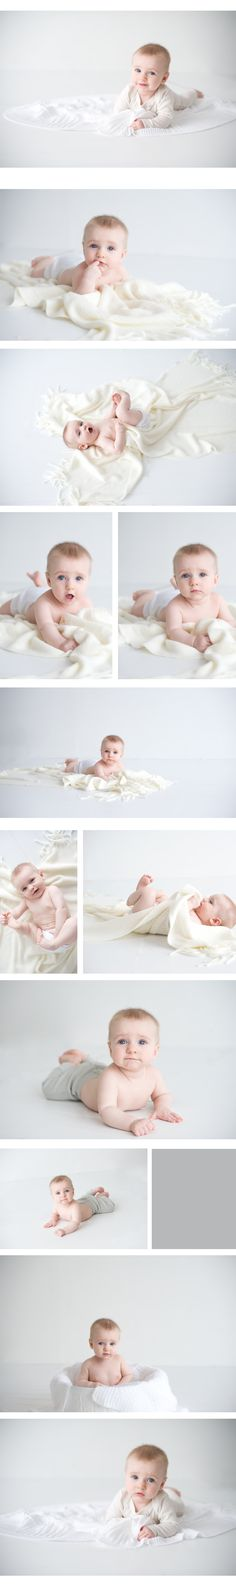 Baby boy 6 months    Lane Proffitt Photography |Nashville TN|